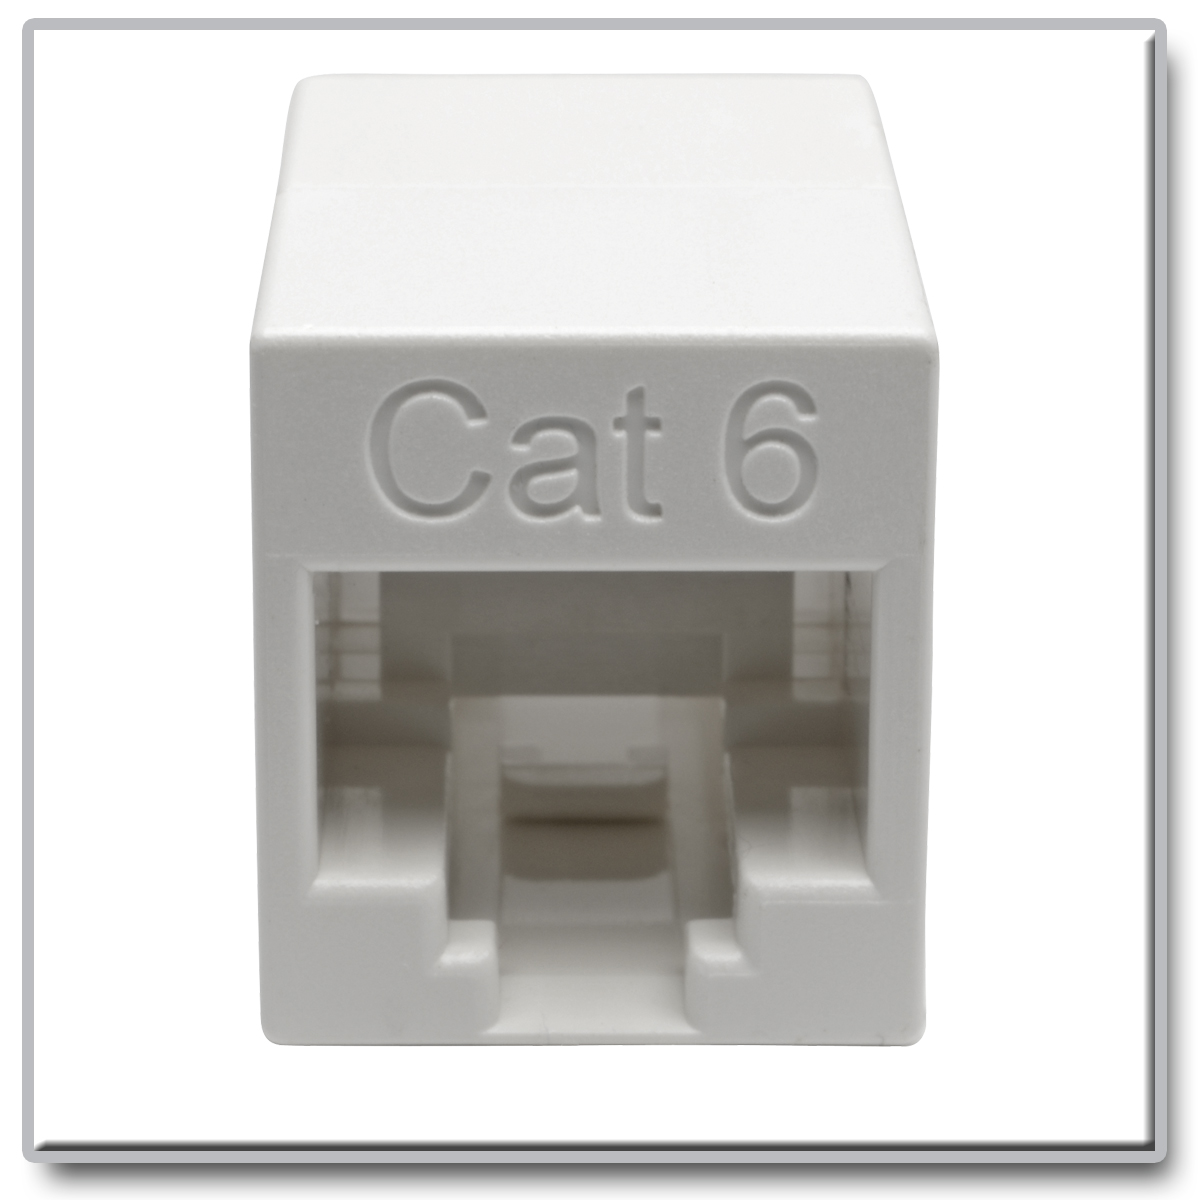 Tripp Lite Cat6 Straight Through Modular In Line Compact Coupler Wiring Diagram On Hi Power Lightning Protector Rj45 Jacks Superior Materials For Optimal Network Performance